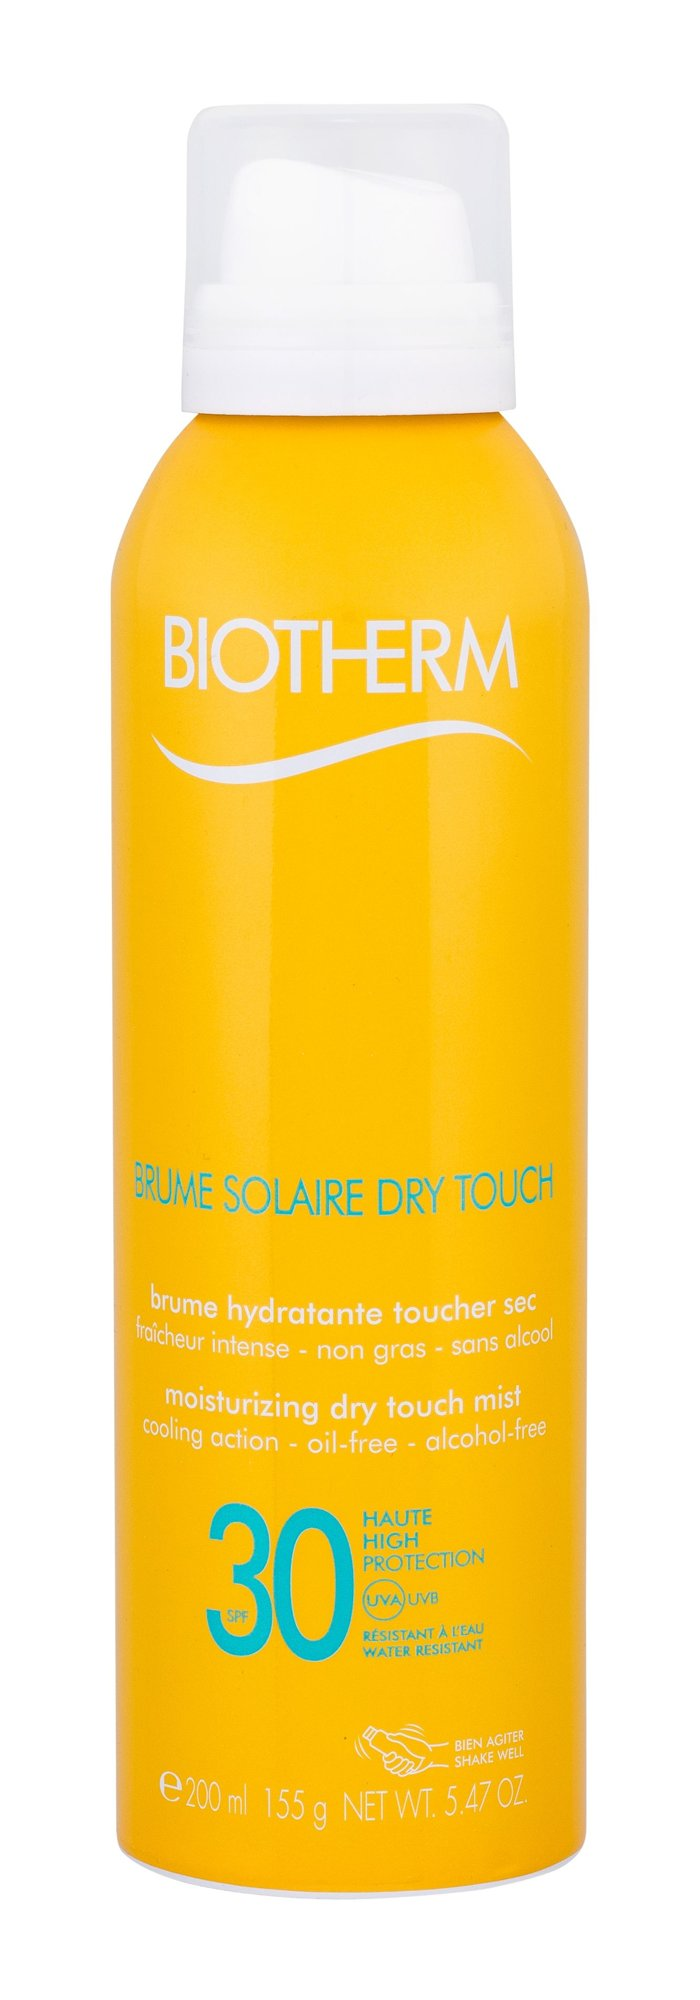 Biotherm Brume Solaire Sun Body Lotion 200ml